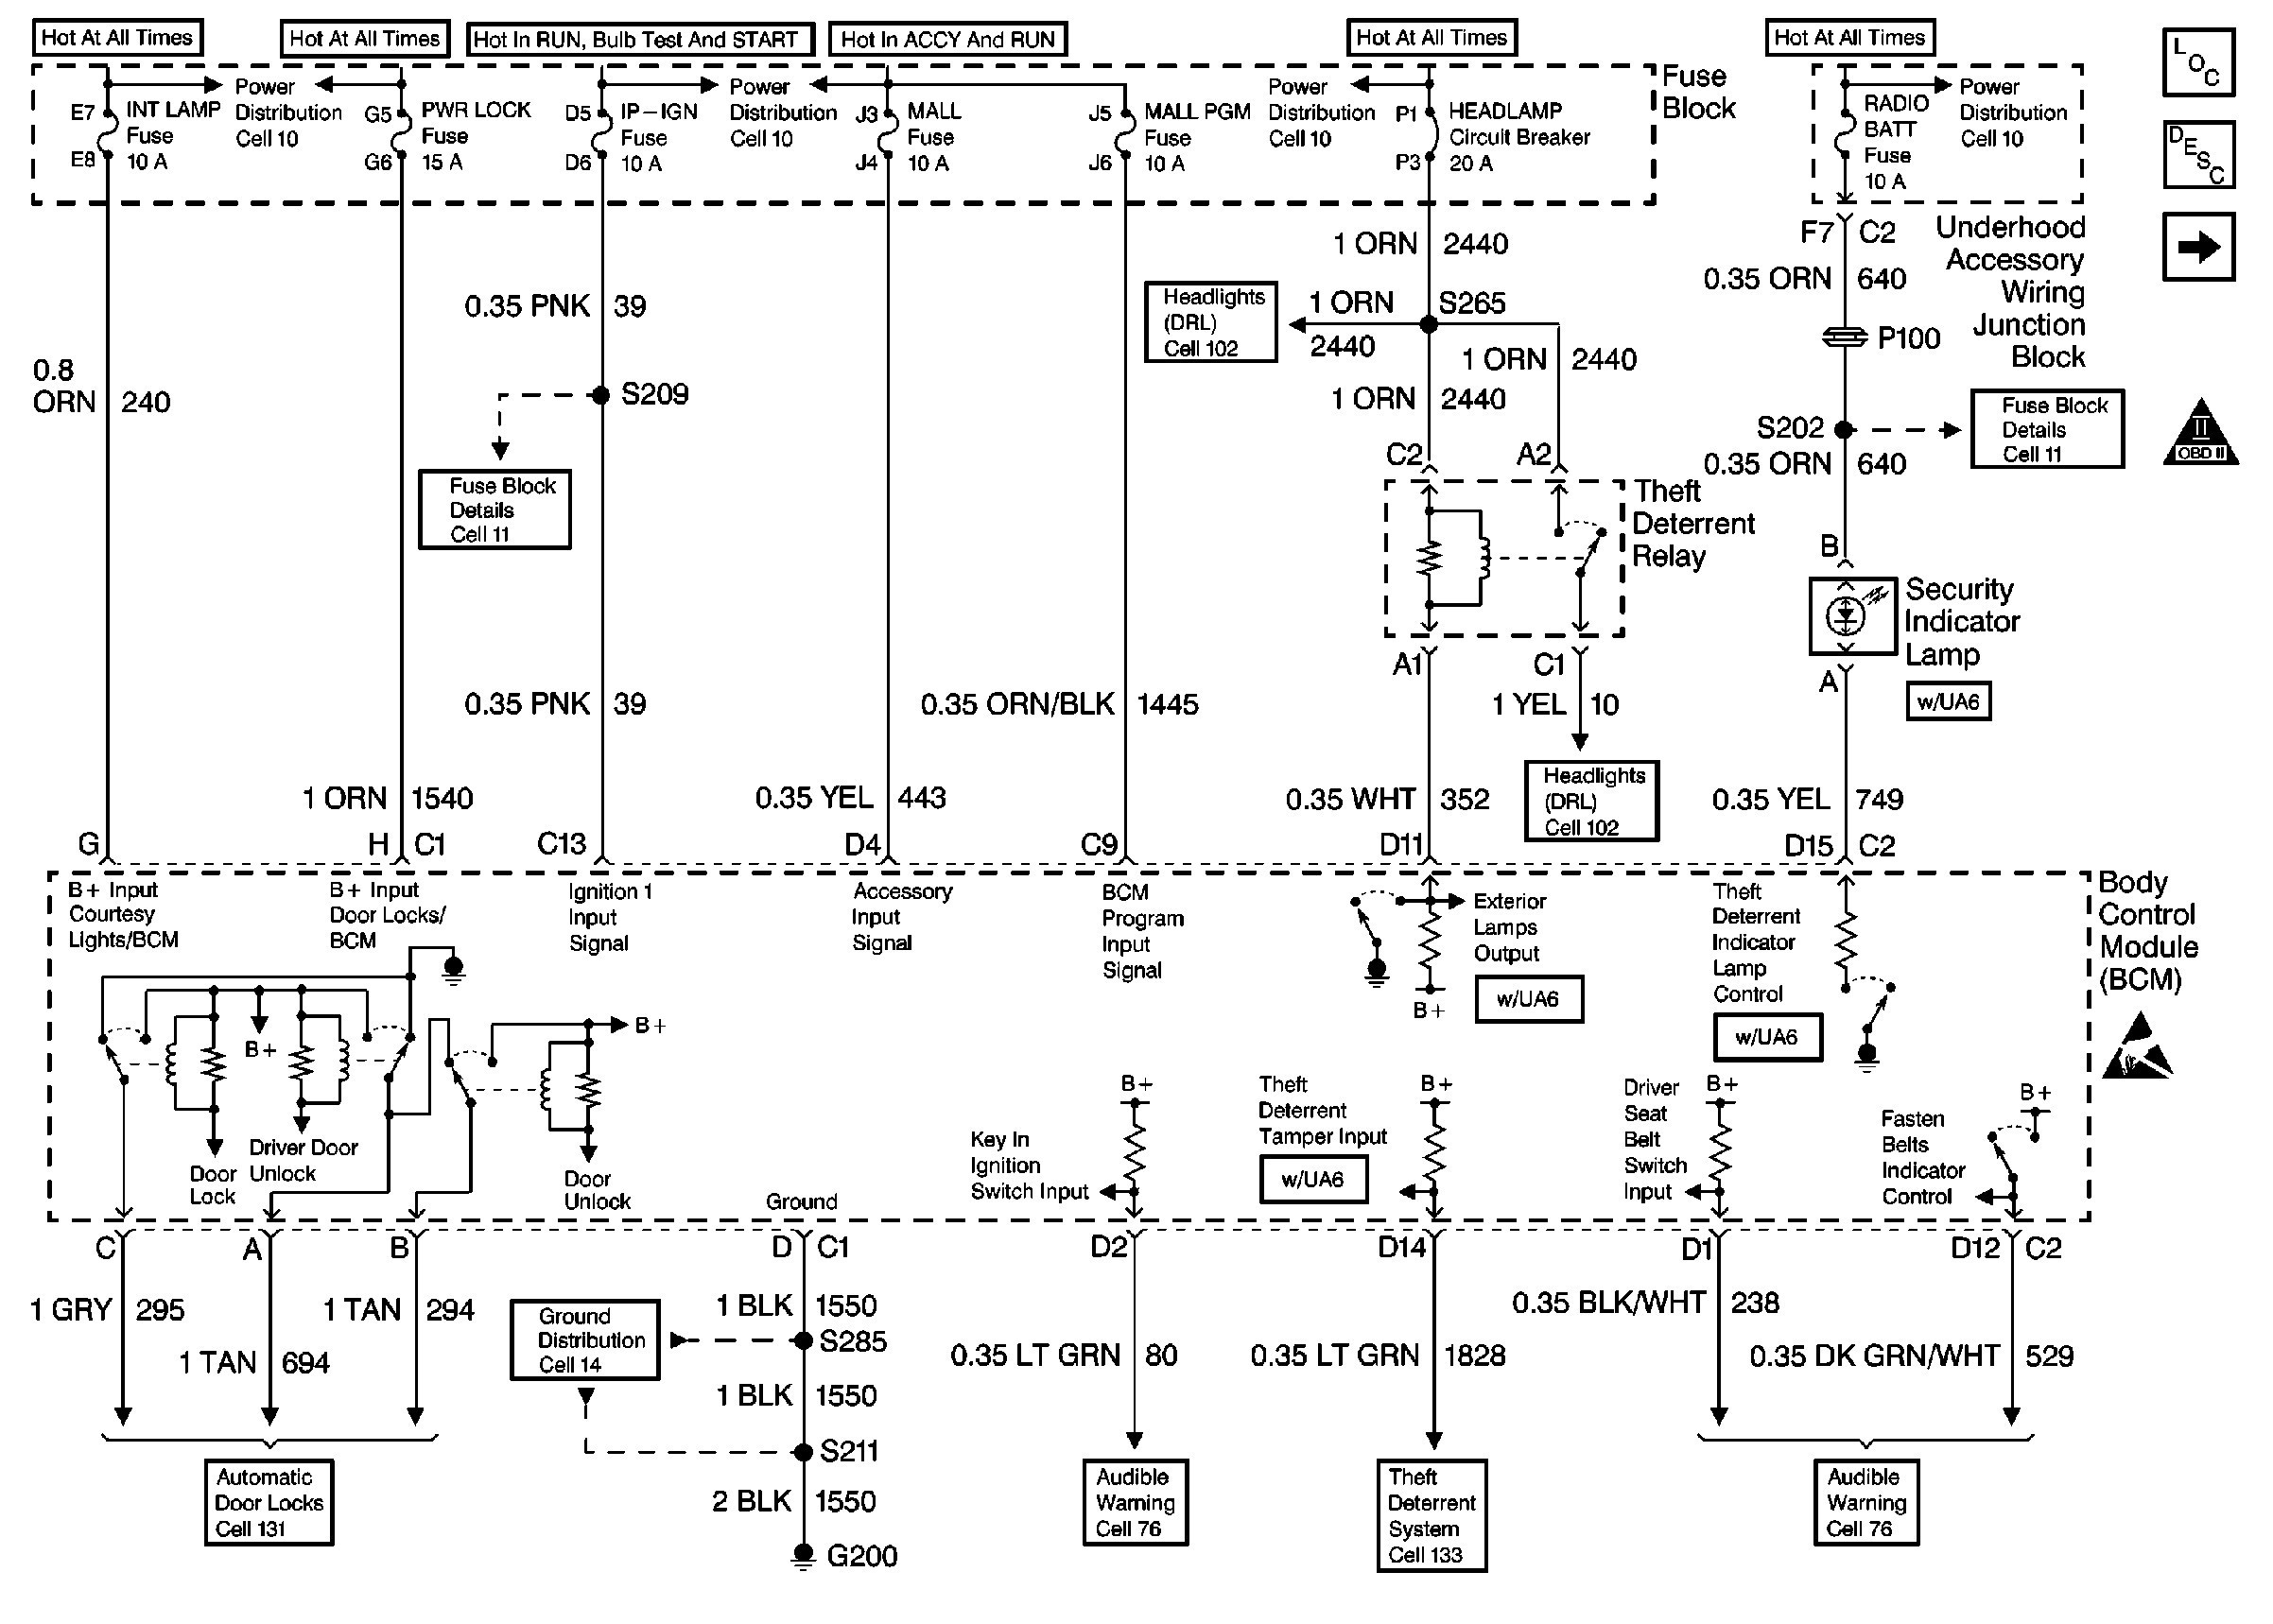 Pontiac Vibe Wiring Diagram from detoxicrecenze.com